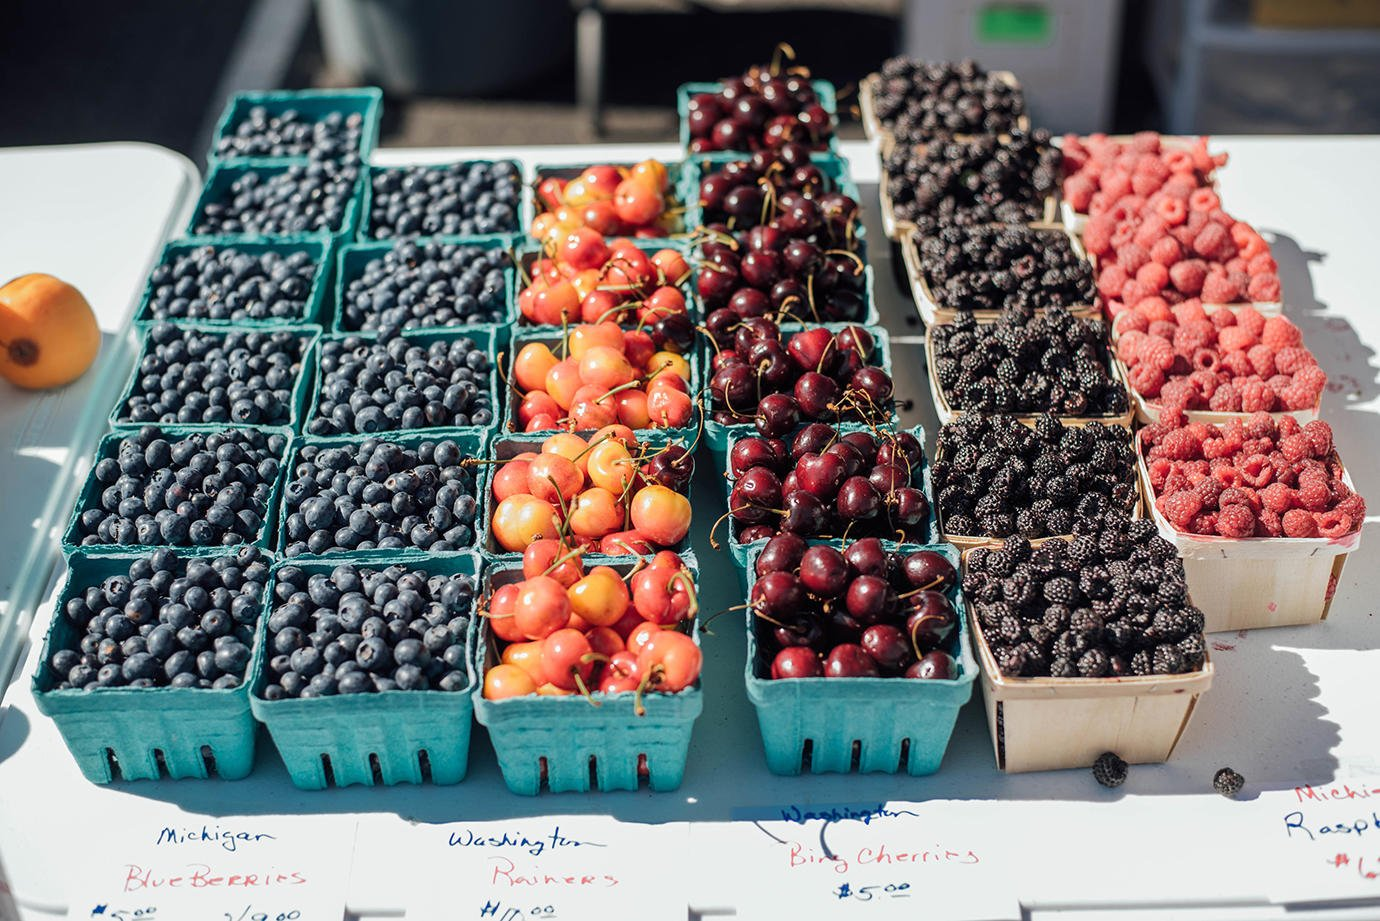 Summer Traditions: The Freight House Farmers Market